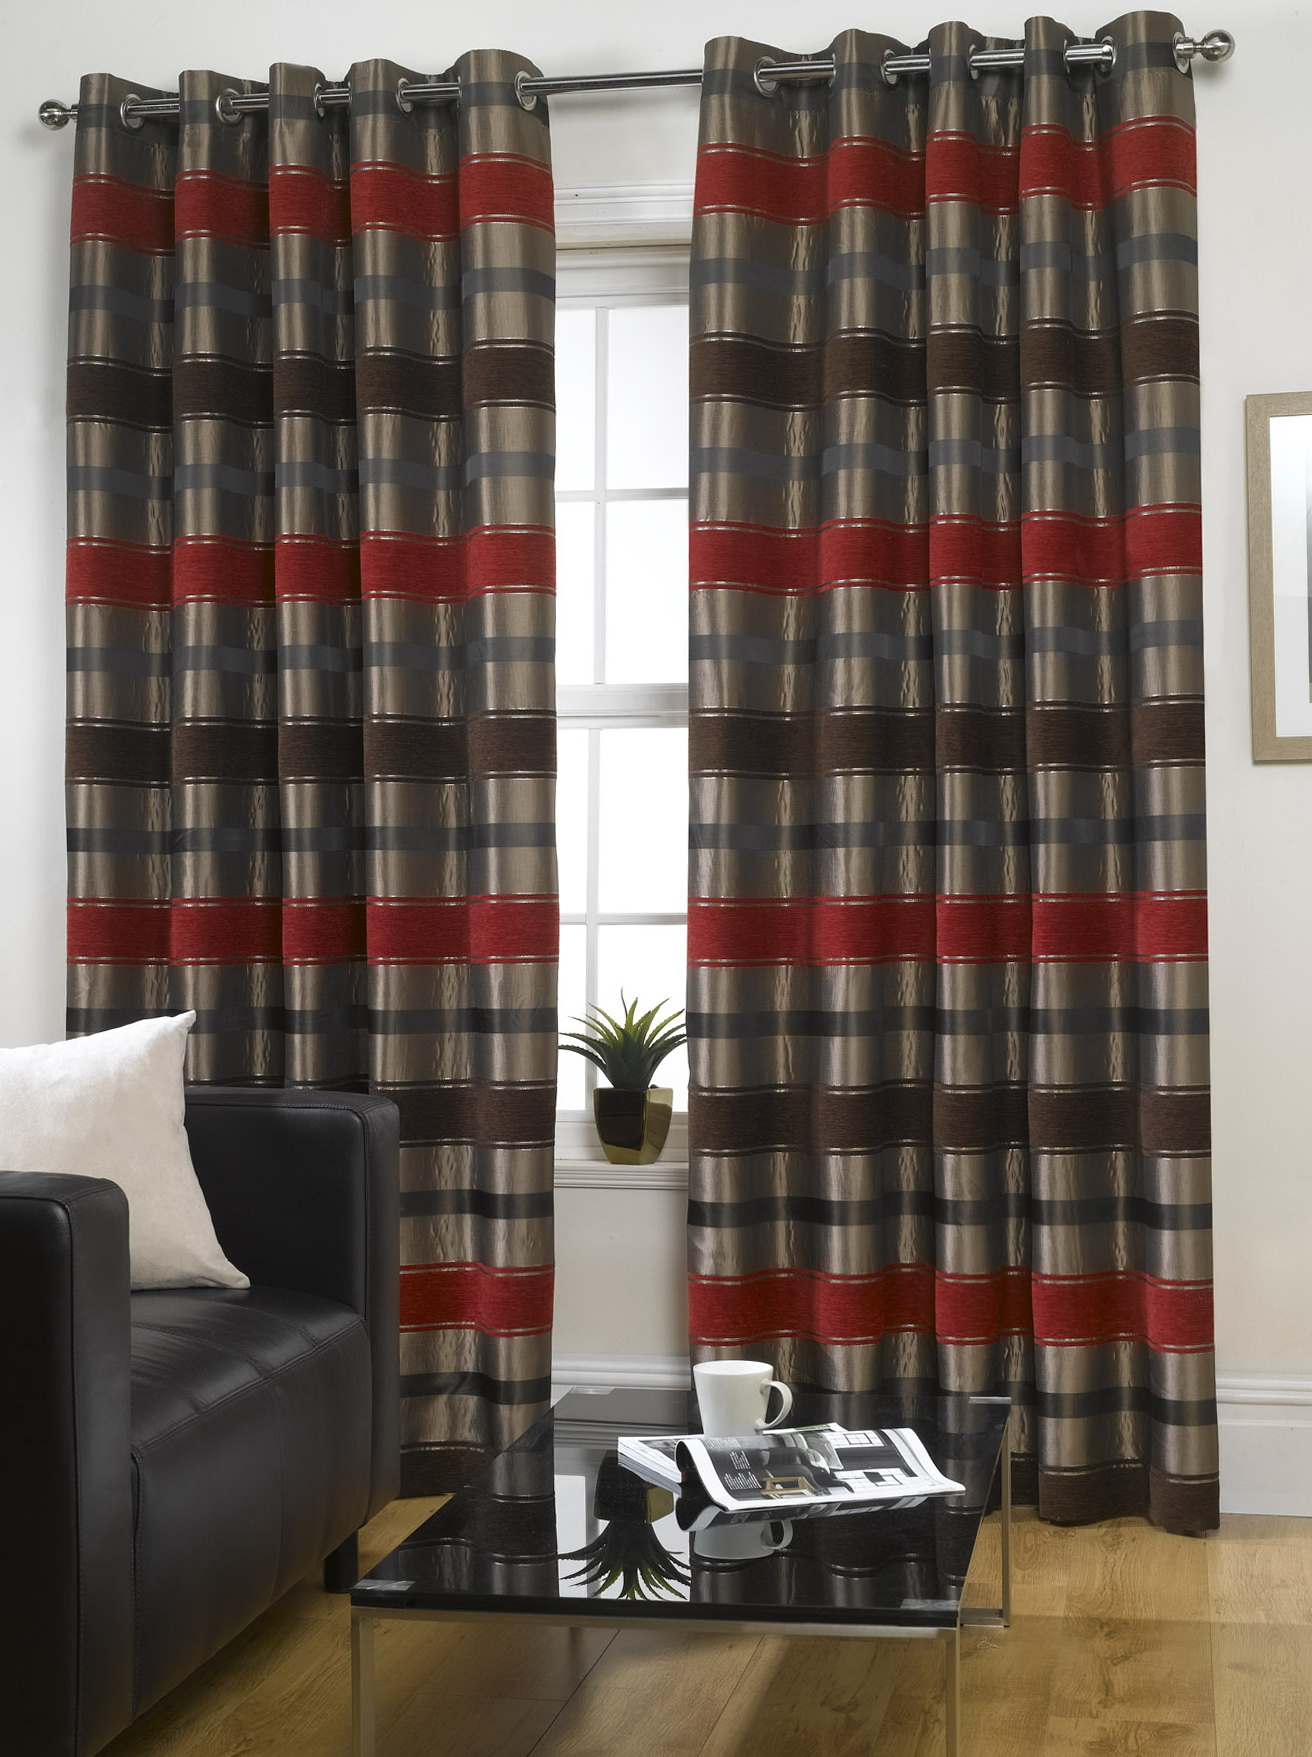 Soundproof Curtains Target | Fabric Roman Shades Target | Target Chevron Curtains